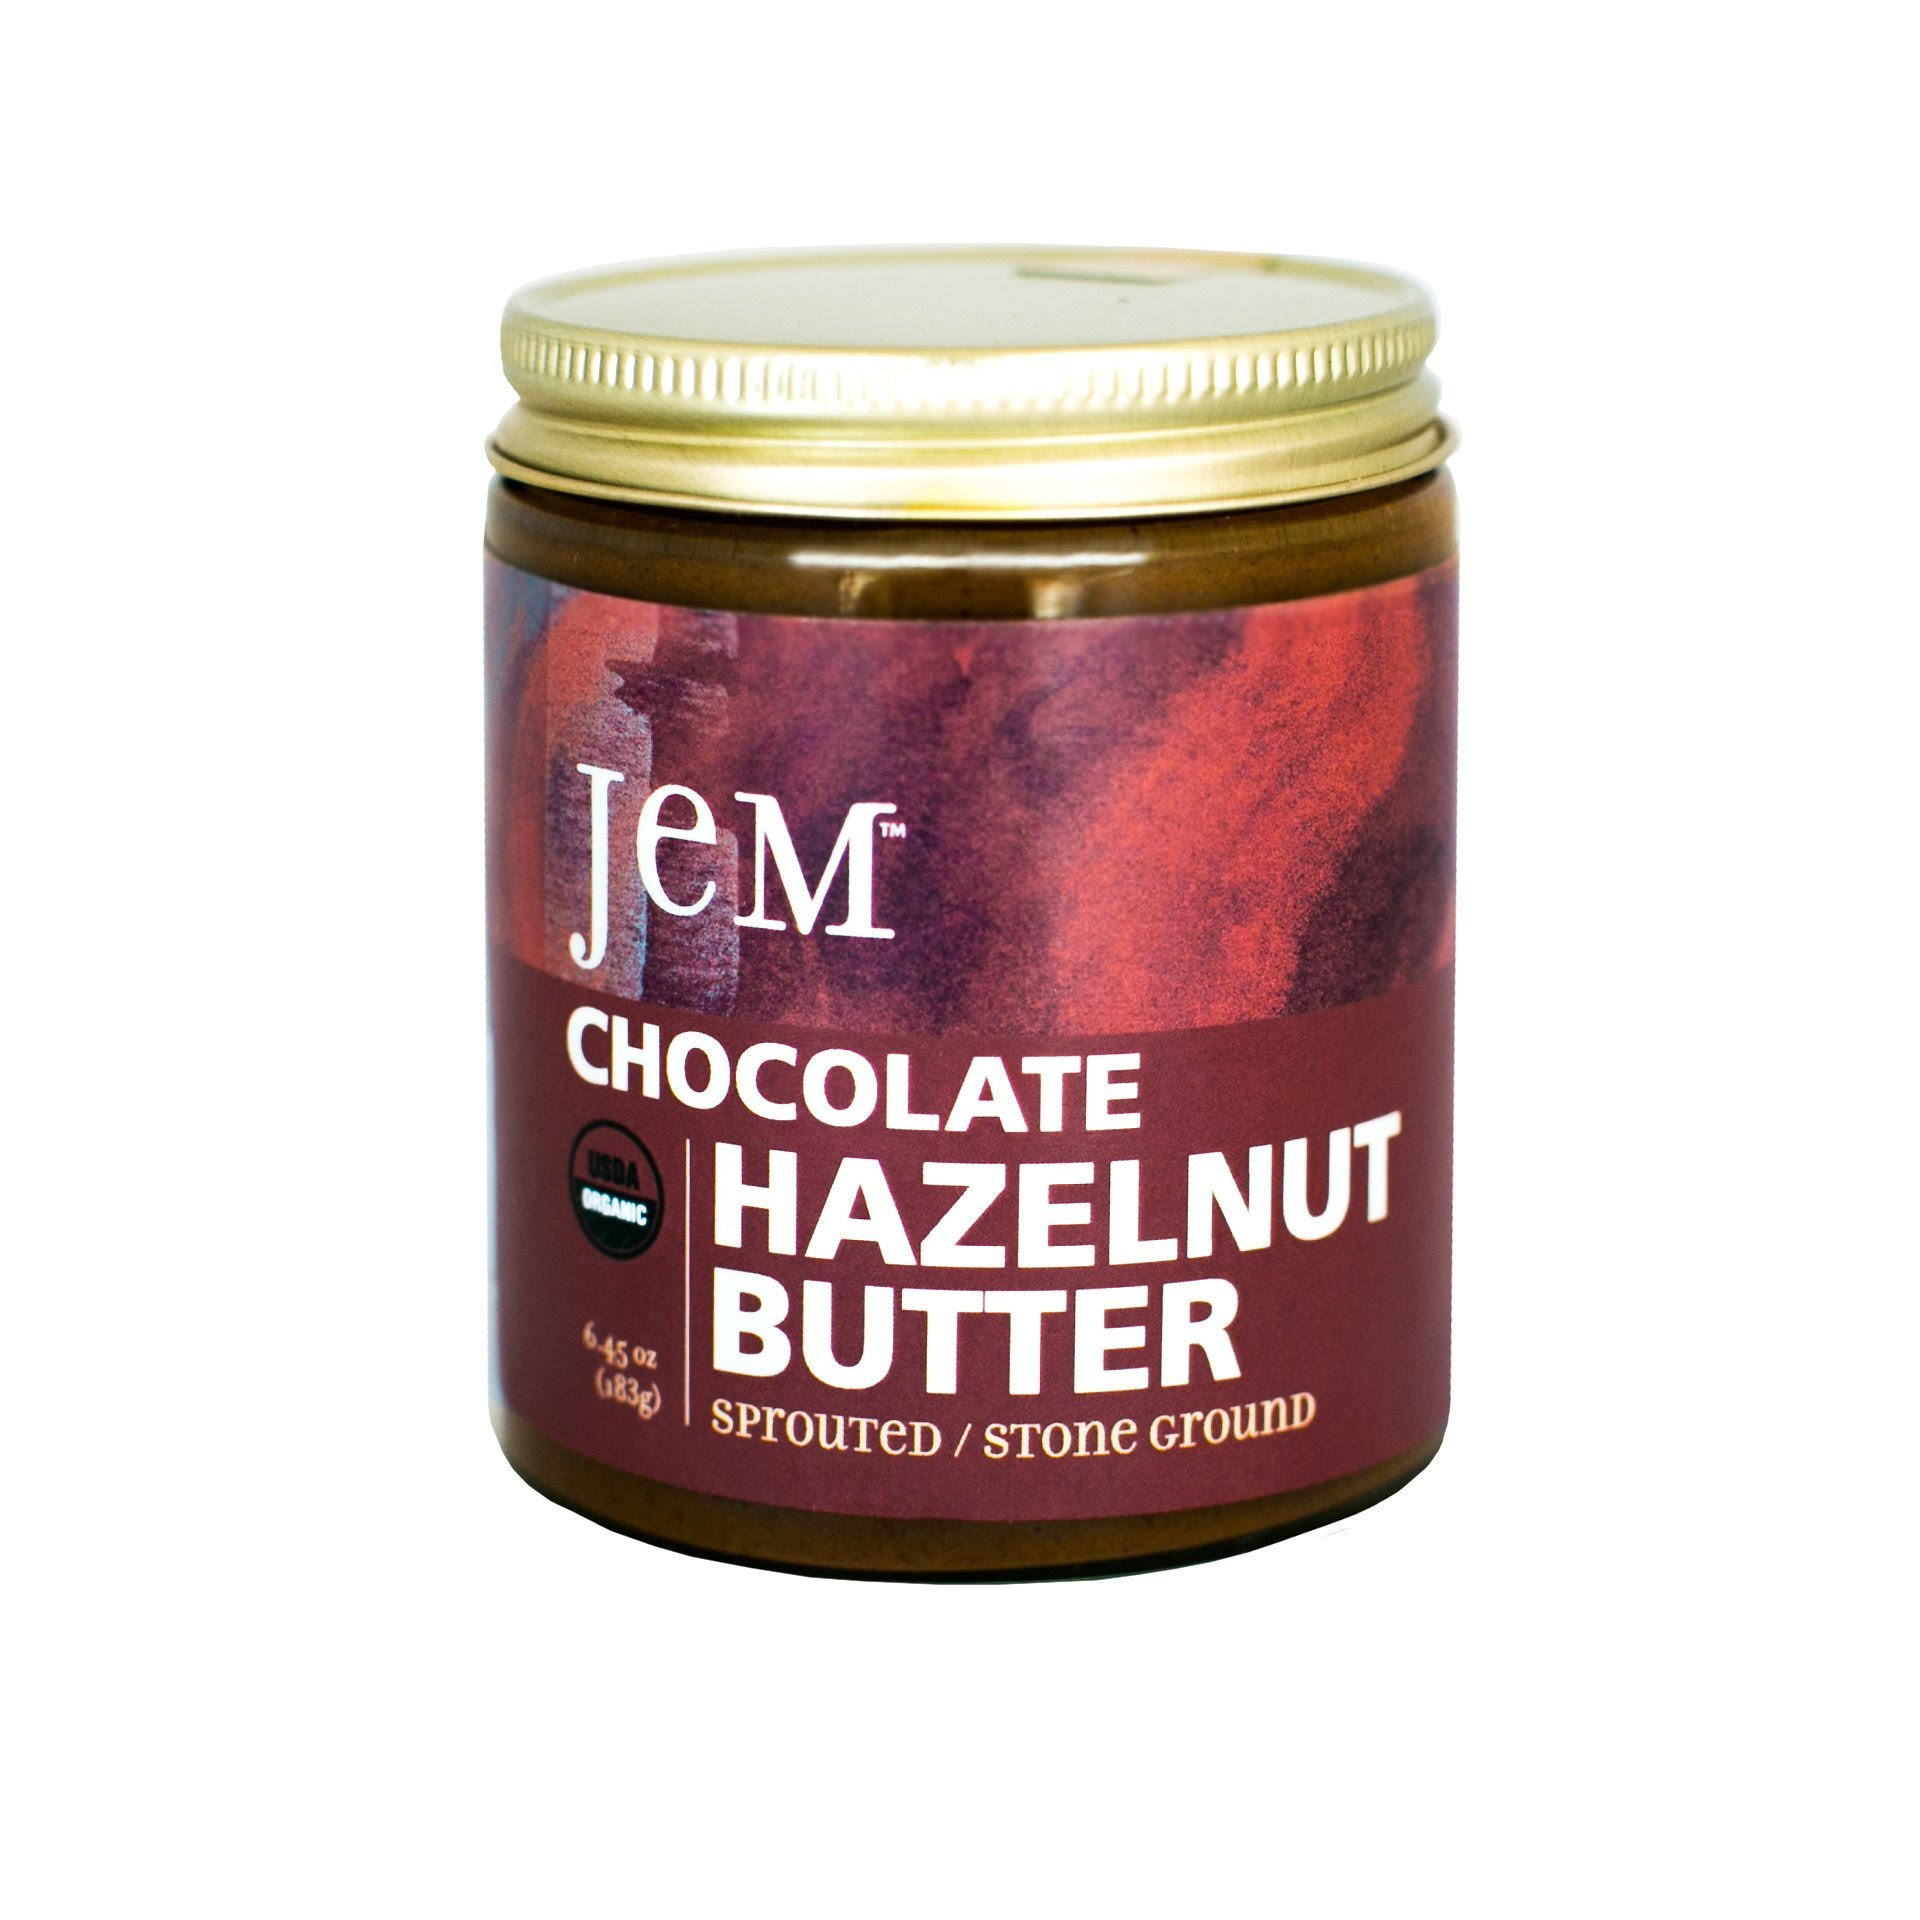 JEM USDA Certified Organic Chocolate Hazelnut Butter Spread - Vegan, NON-GMO, 6oz